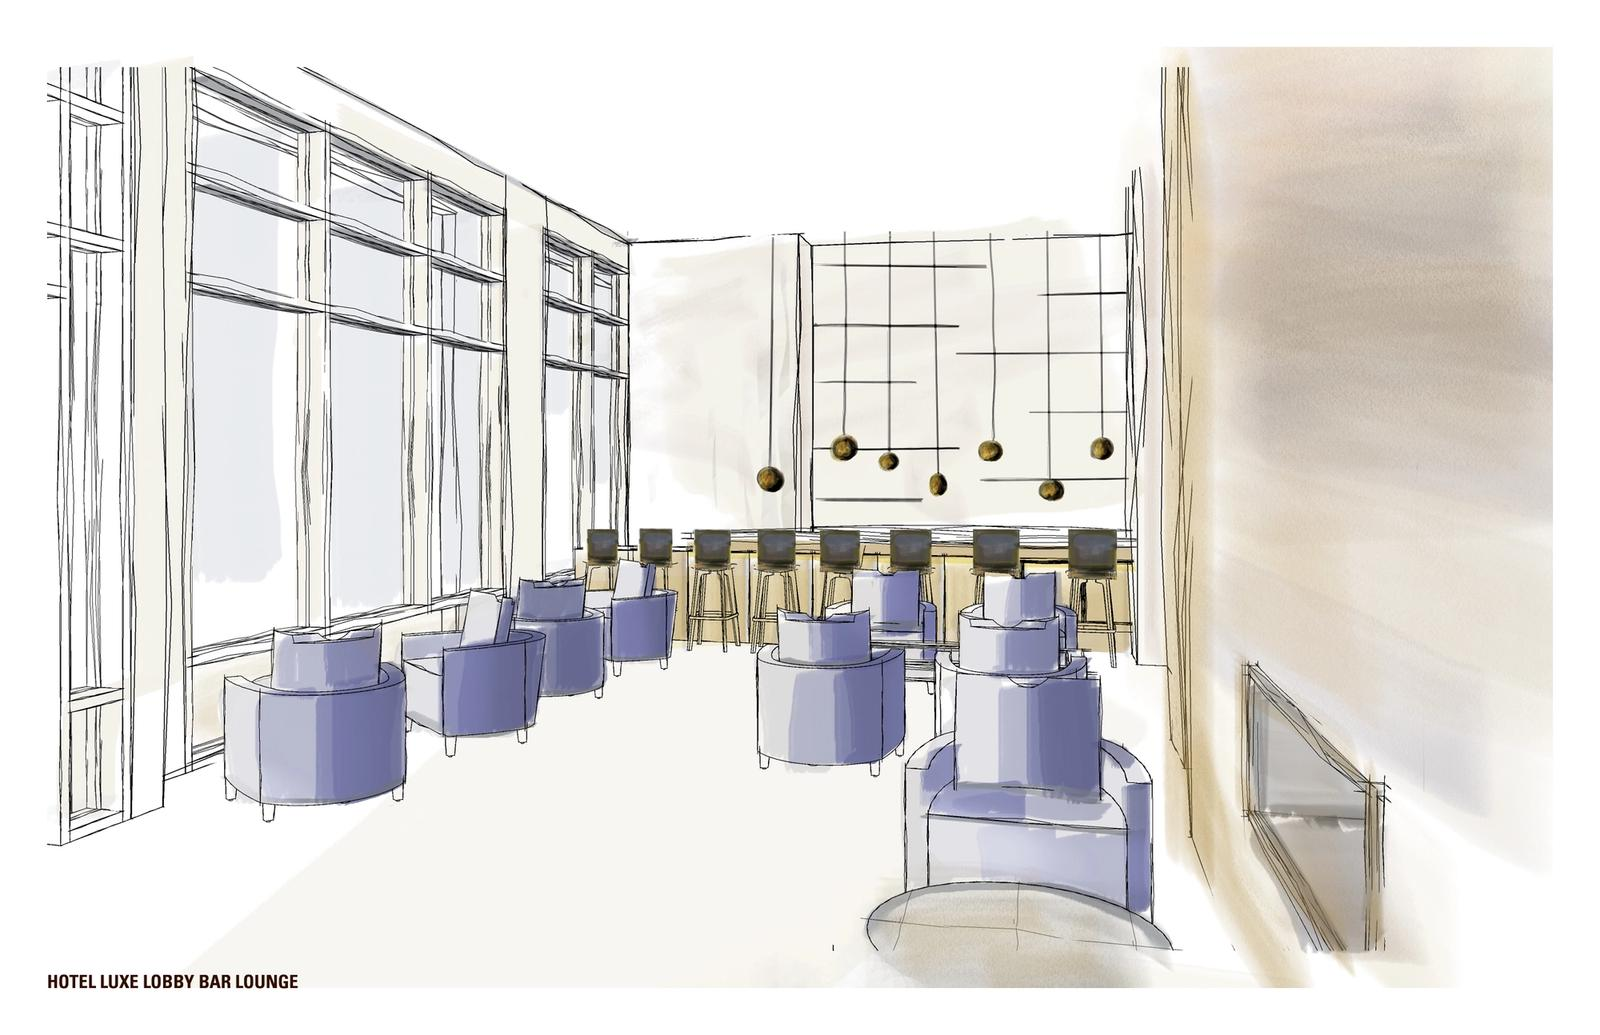 Hotel Luxe - Bar Lounge